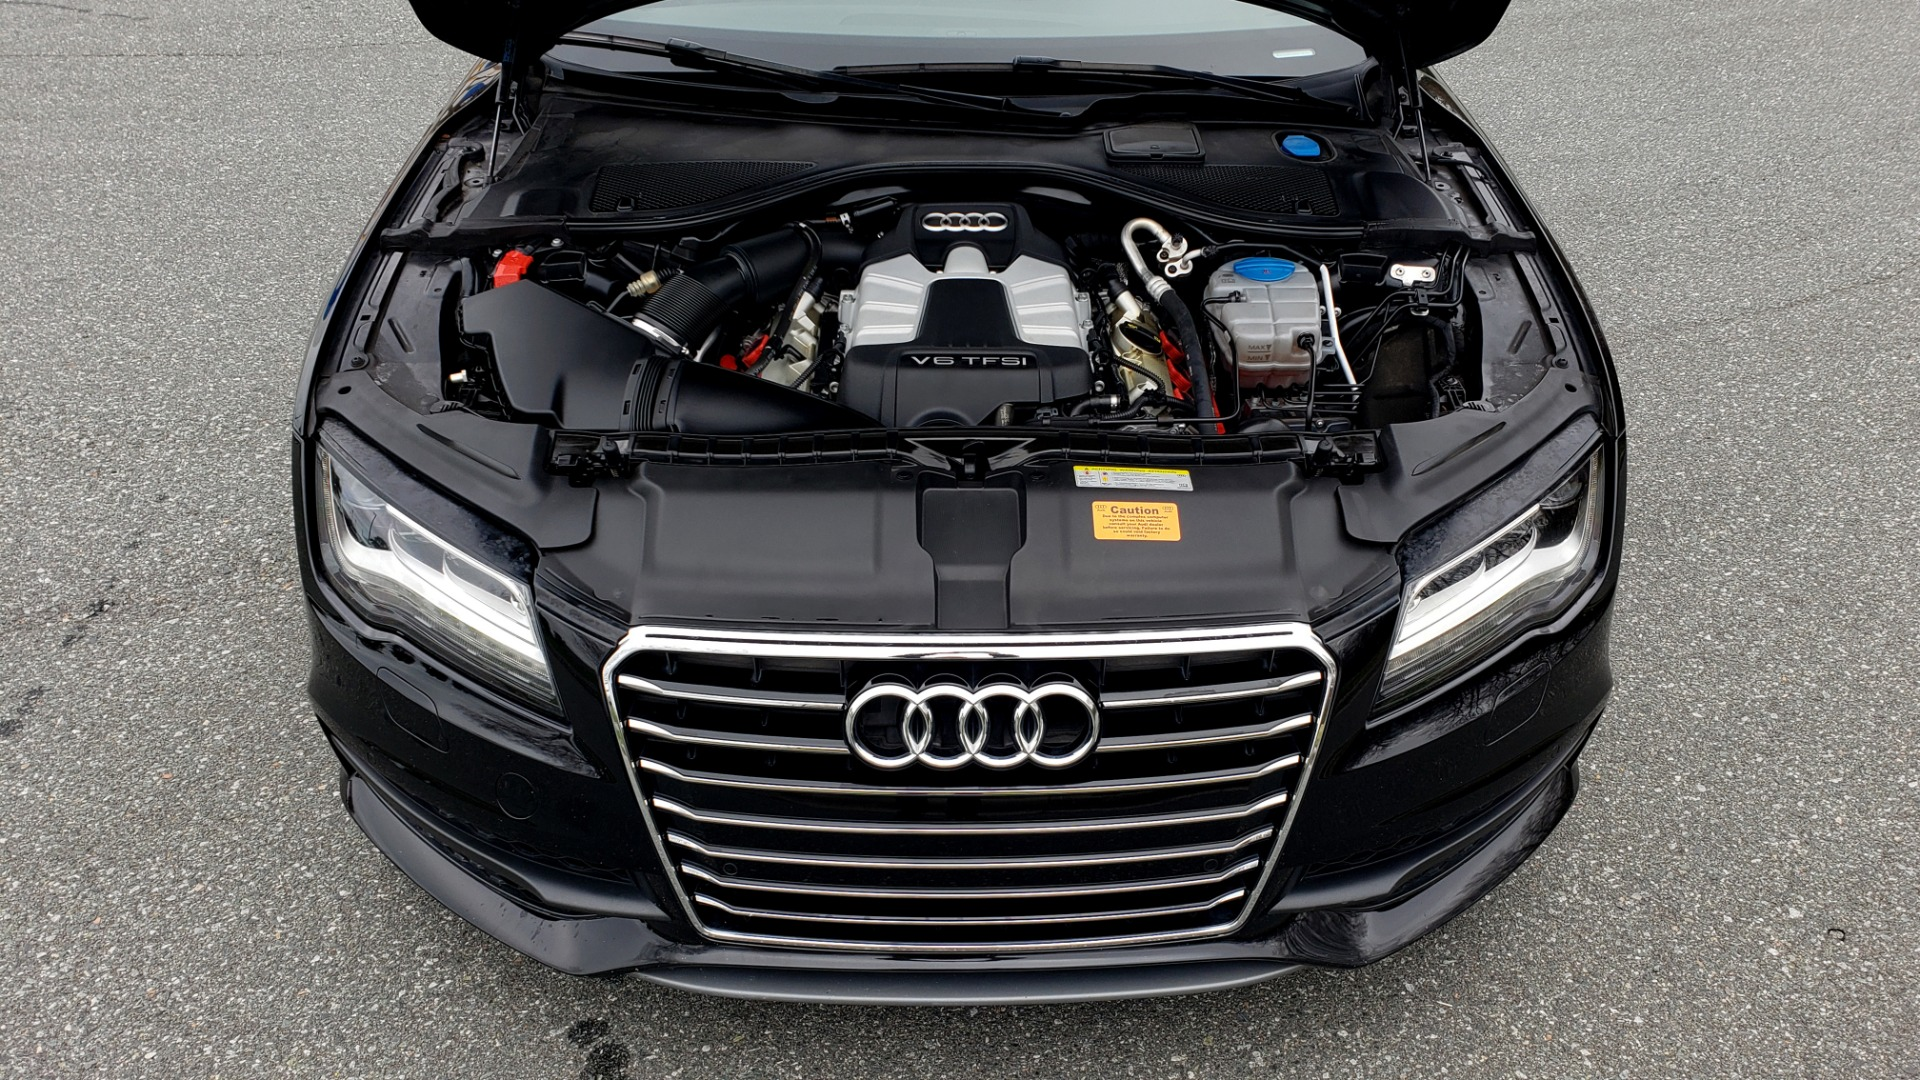 Used 2014 Audi A7 3.0 PRESTIGE / NAV / SUNROOF / BOSE / REARVIEW for sale Sold at Formula Imports in Charlotte NC 28227 13